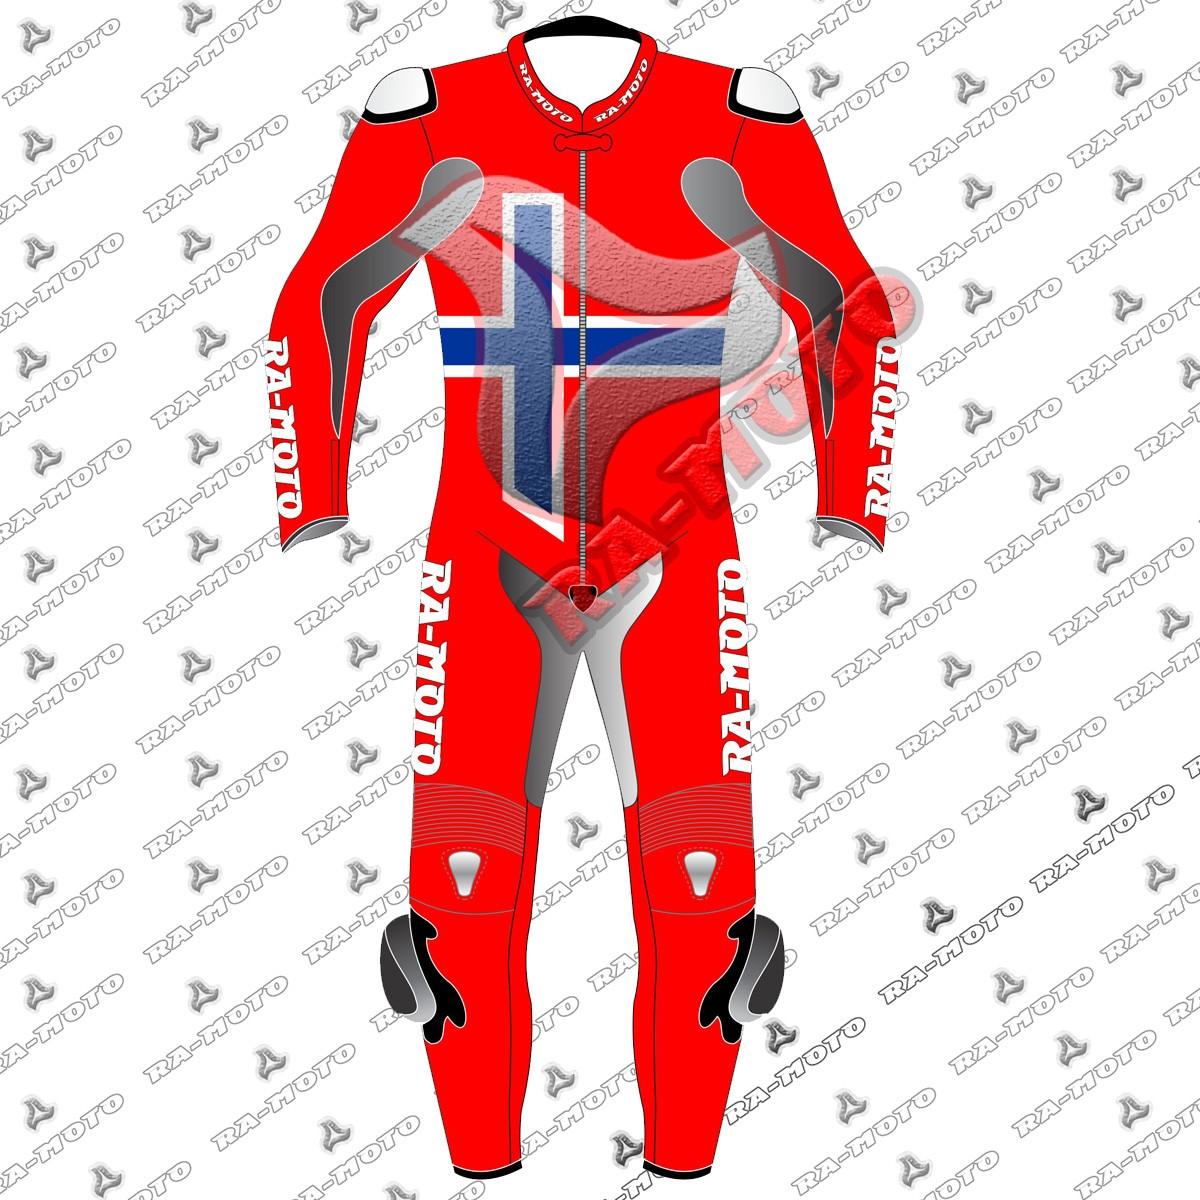 RA-15250 Norway flag moterbike leather suit 2019